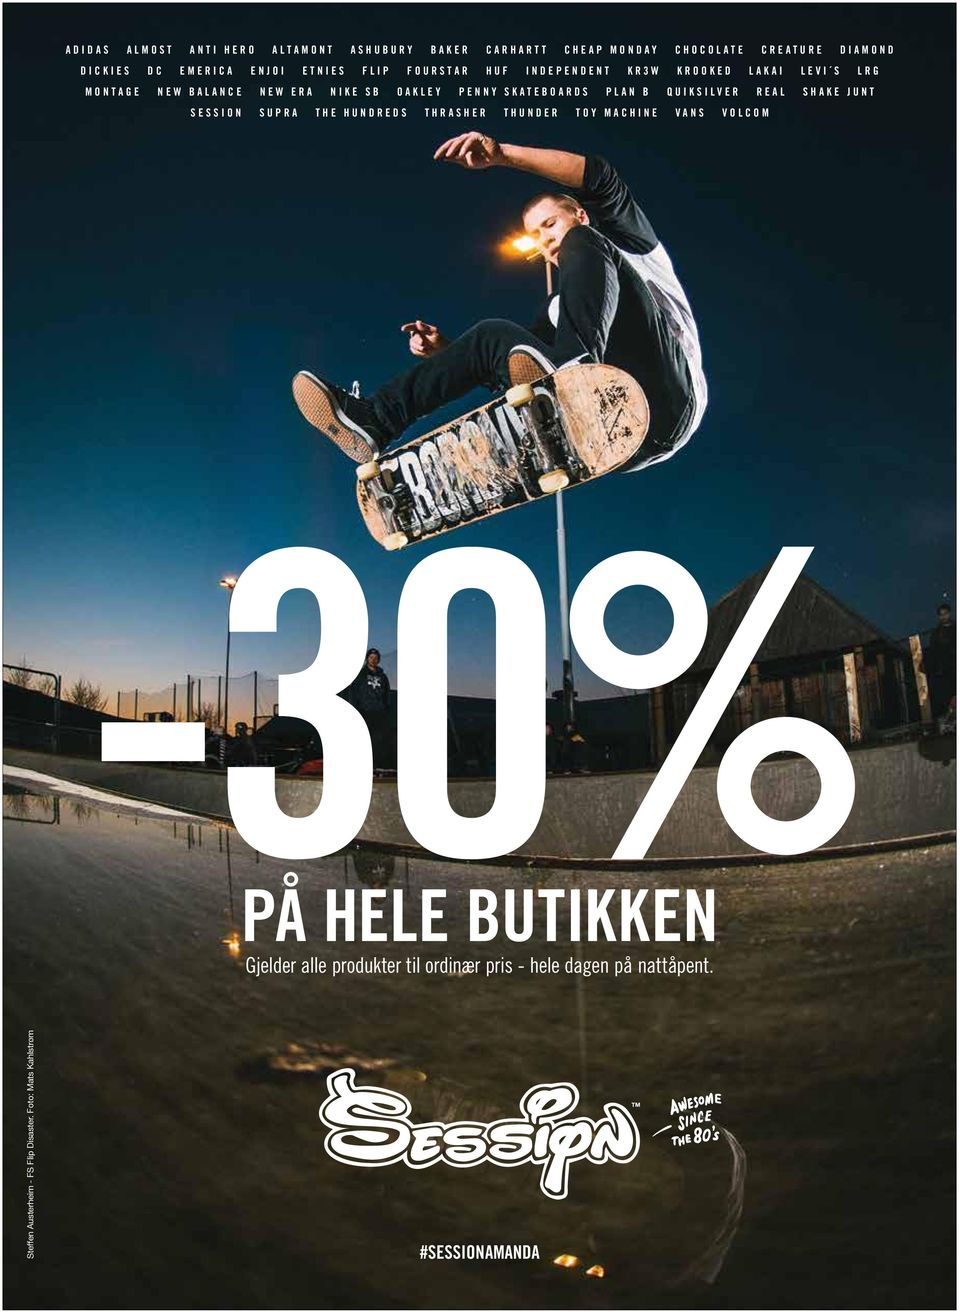 PLAN B QUIKSILVER REAL SHAKE JUNT SESSION SUPRA THE HUNDREDS THRASHER THUNDER TOY MACHINE VANS VOLCOM PÅ HELE BUTIKKEN Gjelder